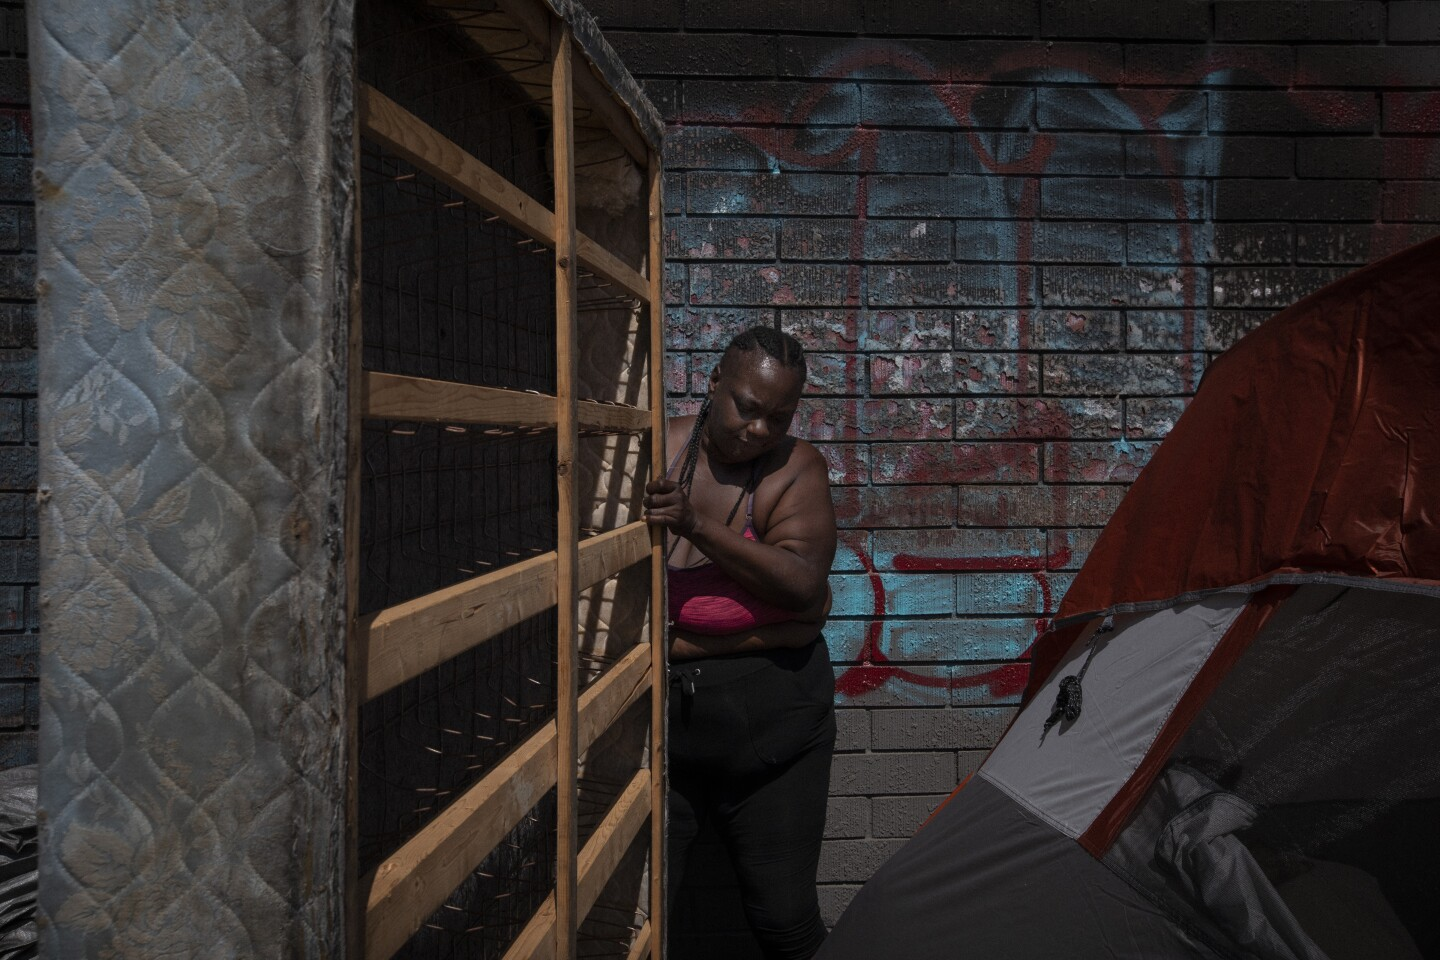 LOS ANGELES, CA JUNE 26, 2018: Leneace Pope, known as ÒNiecyÓ for short moves her mattress into her tent near West 39th Street and South Broadway in Los Angeles, CA June 26, 2018. (*Editors Note: Contact photo editor Mary Cooney should you have any questions. Please do not use this image for other stories. This image is for a future project by writer Tom Curwen.) (Francine Orr/ Los Angeles Times)